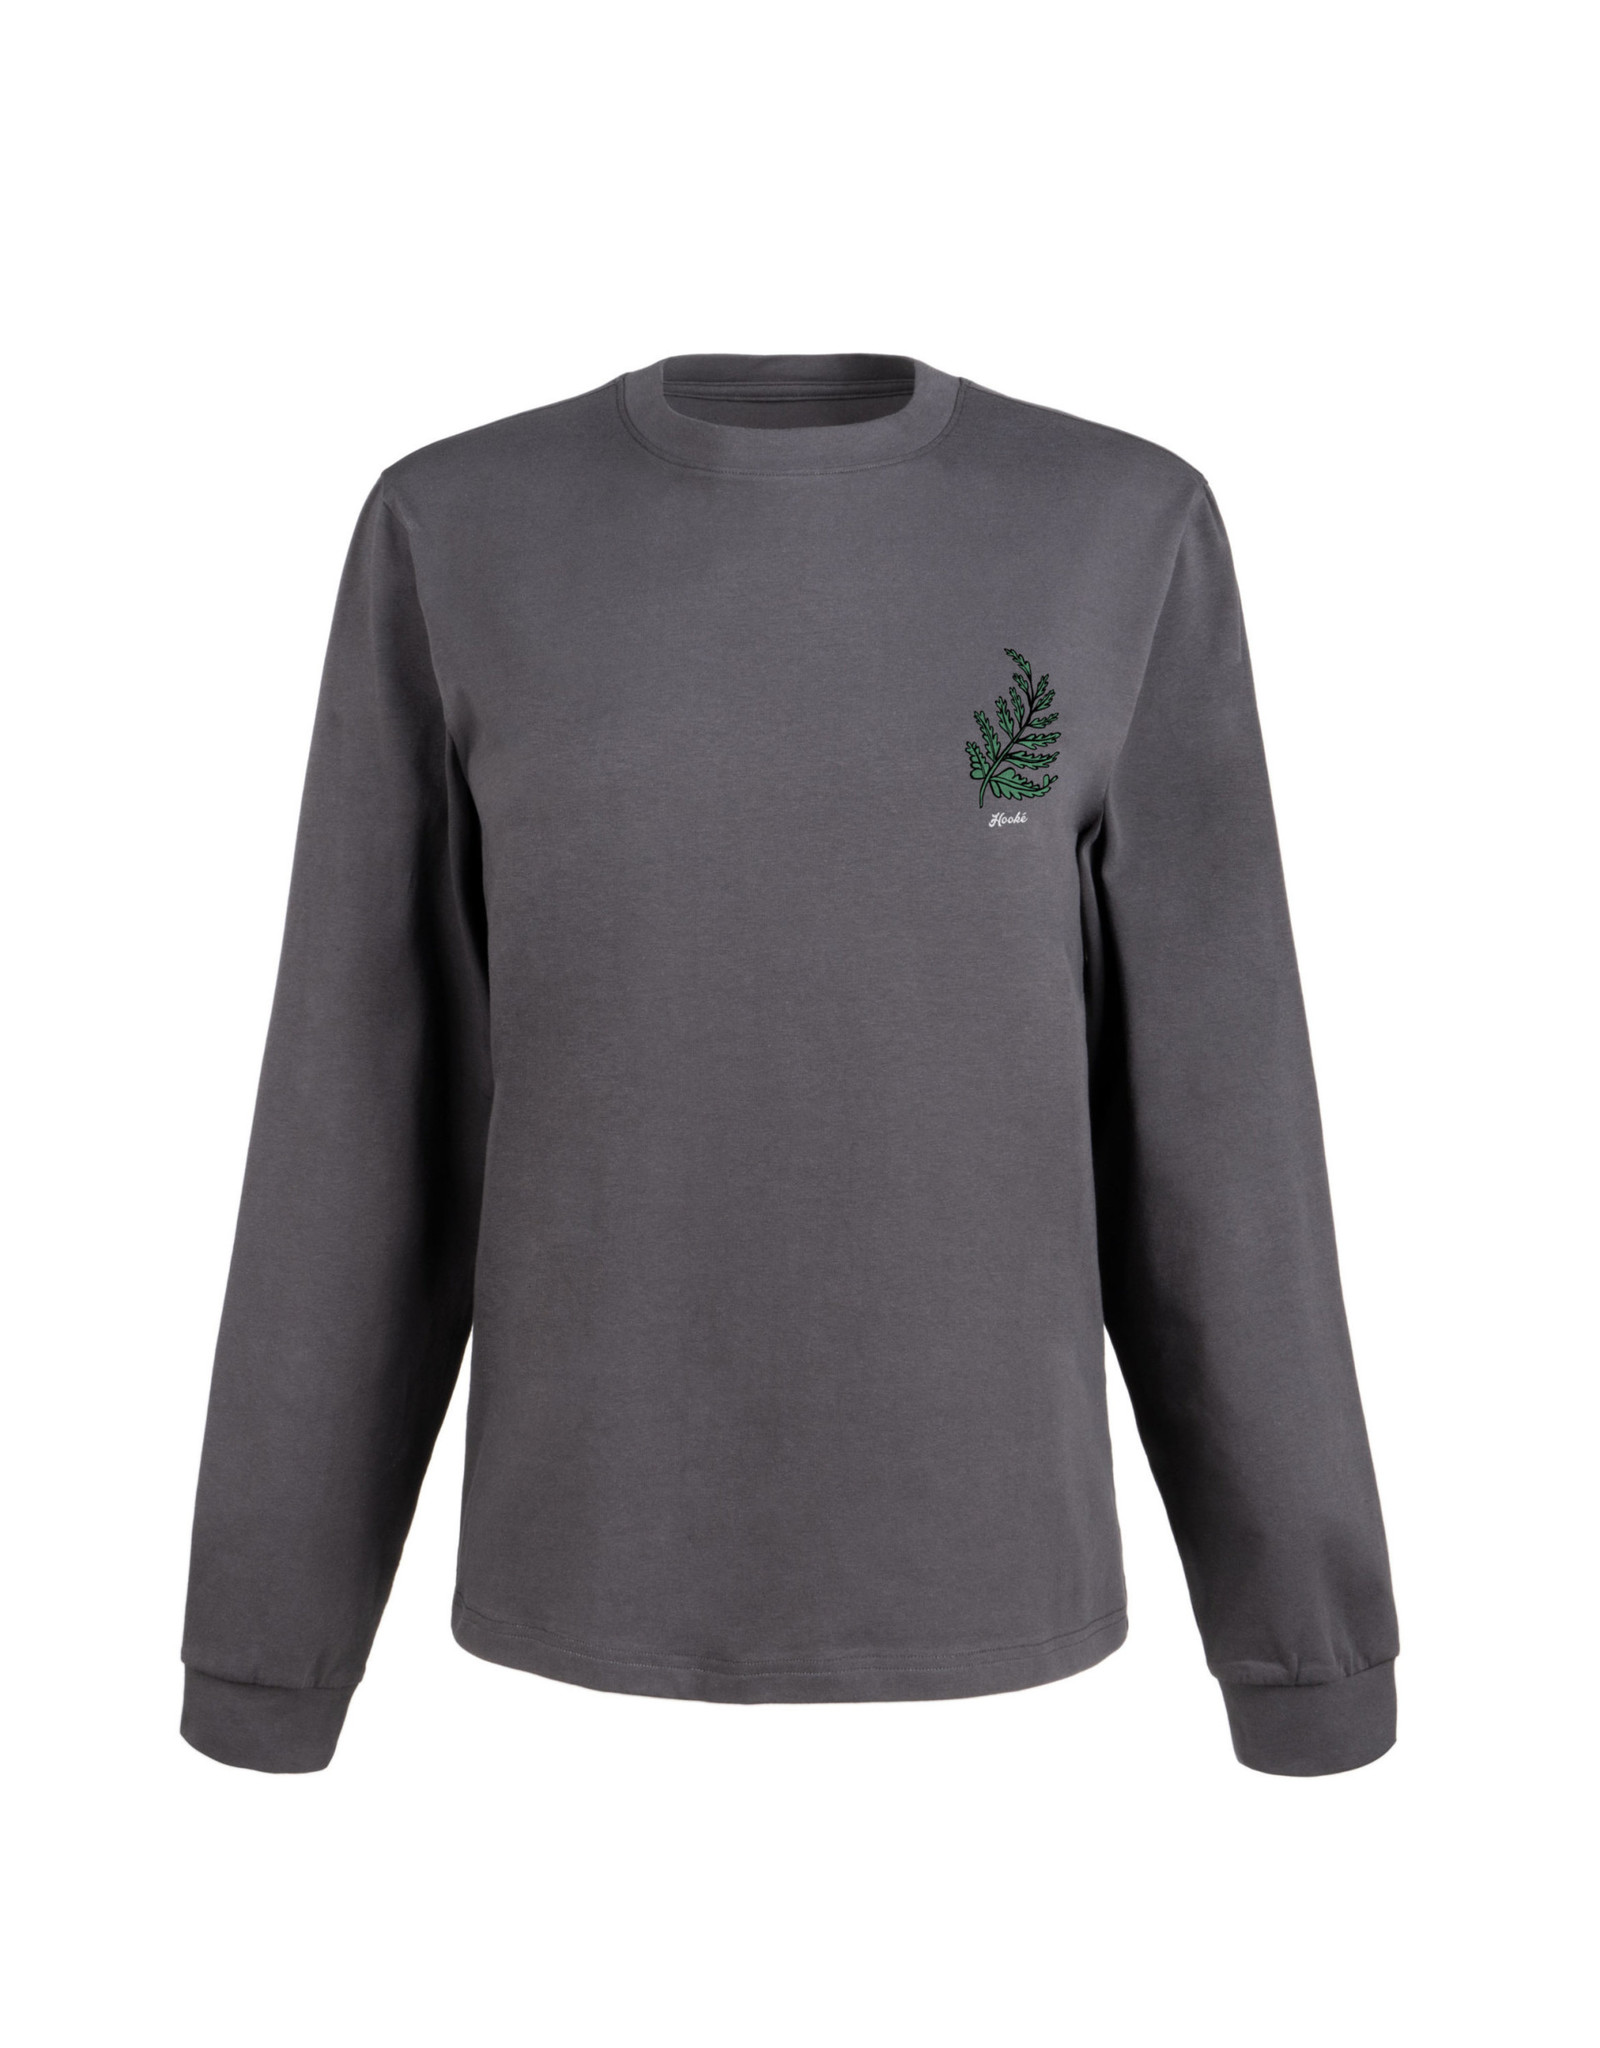 Hooké Hooké Foliage Long Sleeve Women's